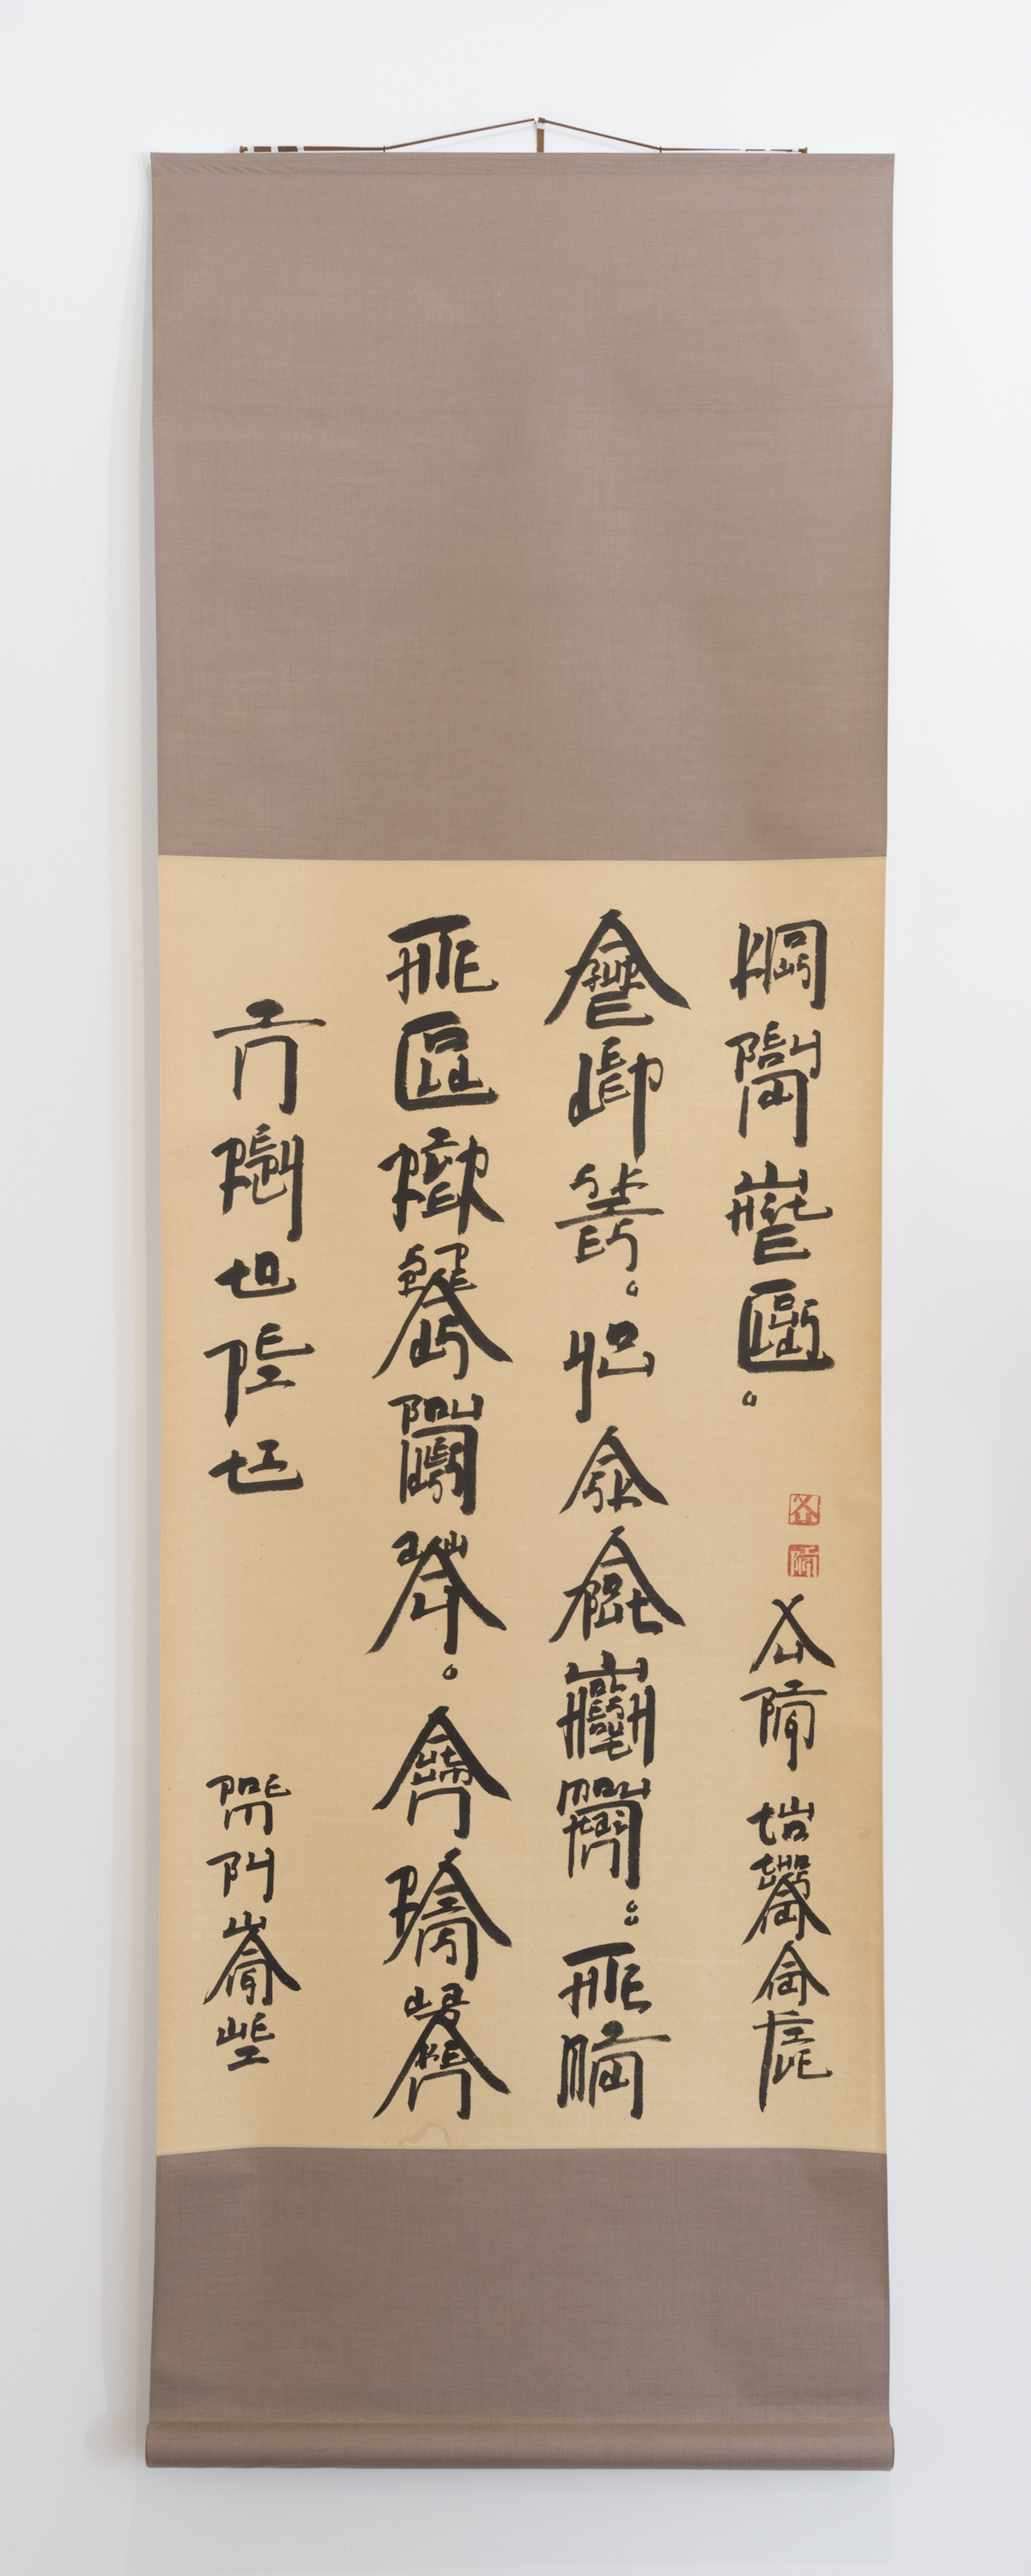 Xu Bin, New English Caligraphy – Untitled(In Reply to Pei Ti), Ink on rice paper, on silk scoll, 215.9X69.85cm, 2005